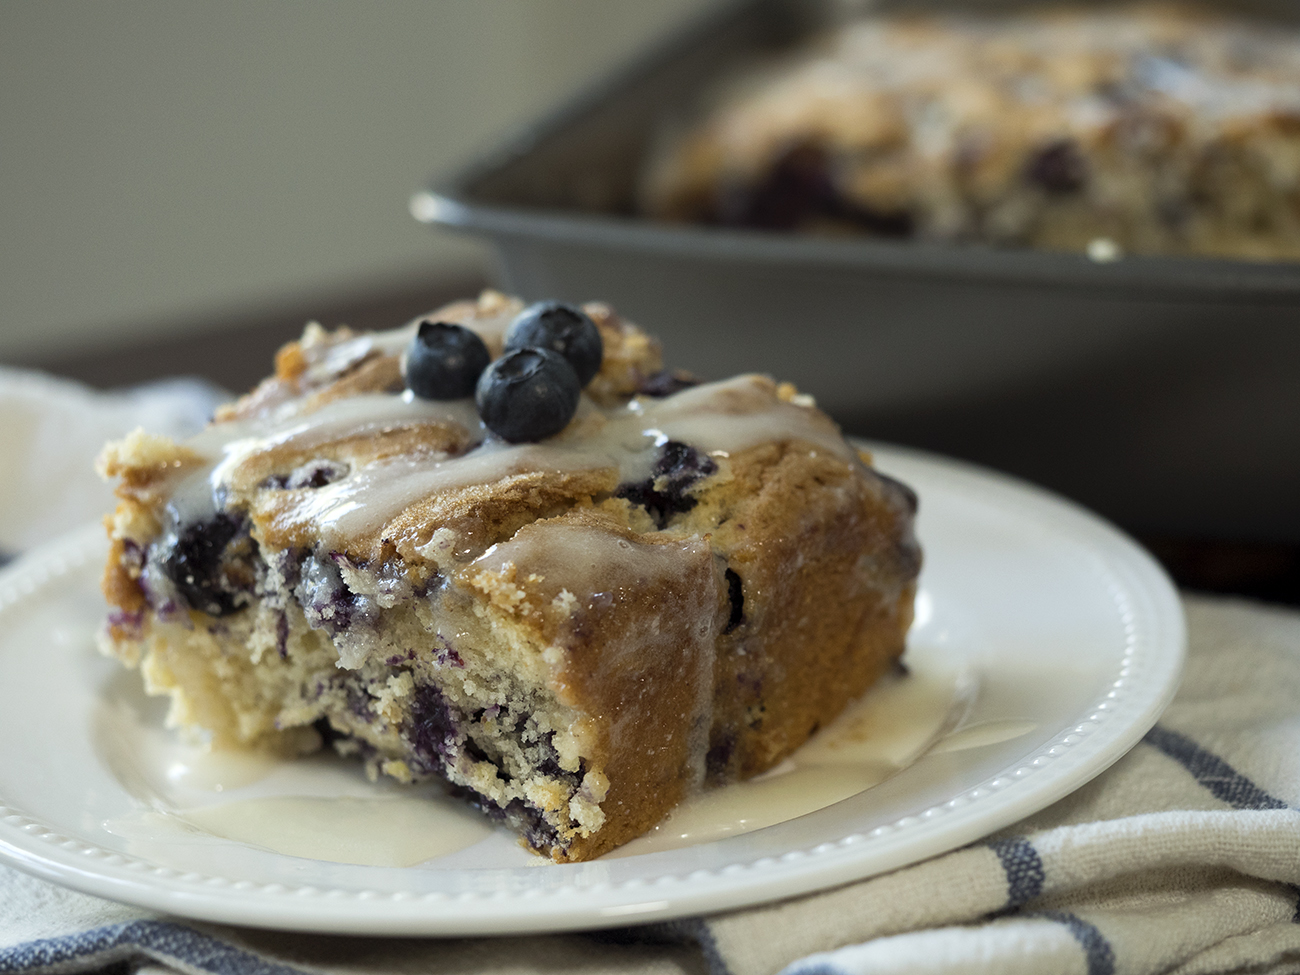 Forget The Pancakes, This Blueberry Dish Is So Much Better…